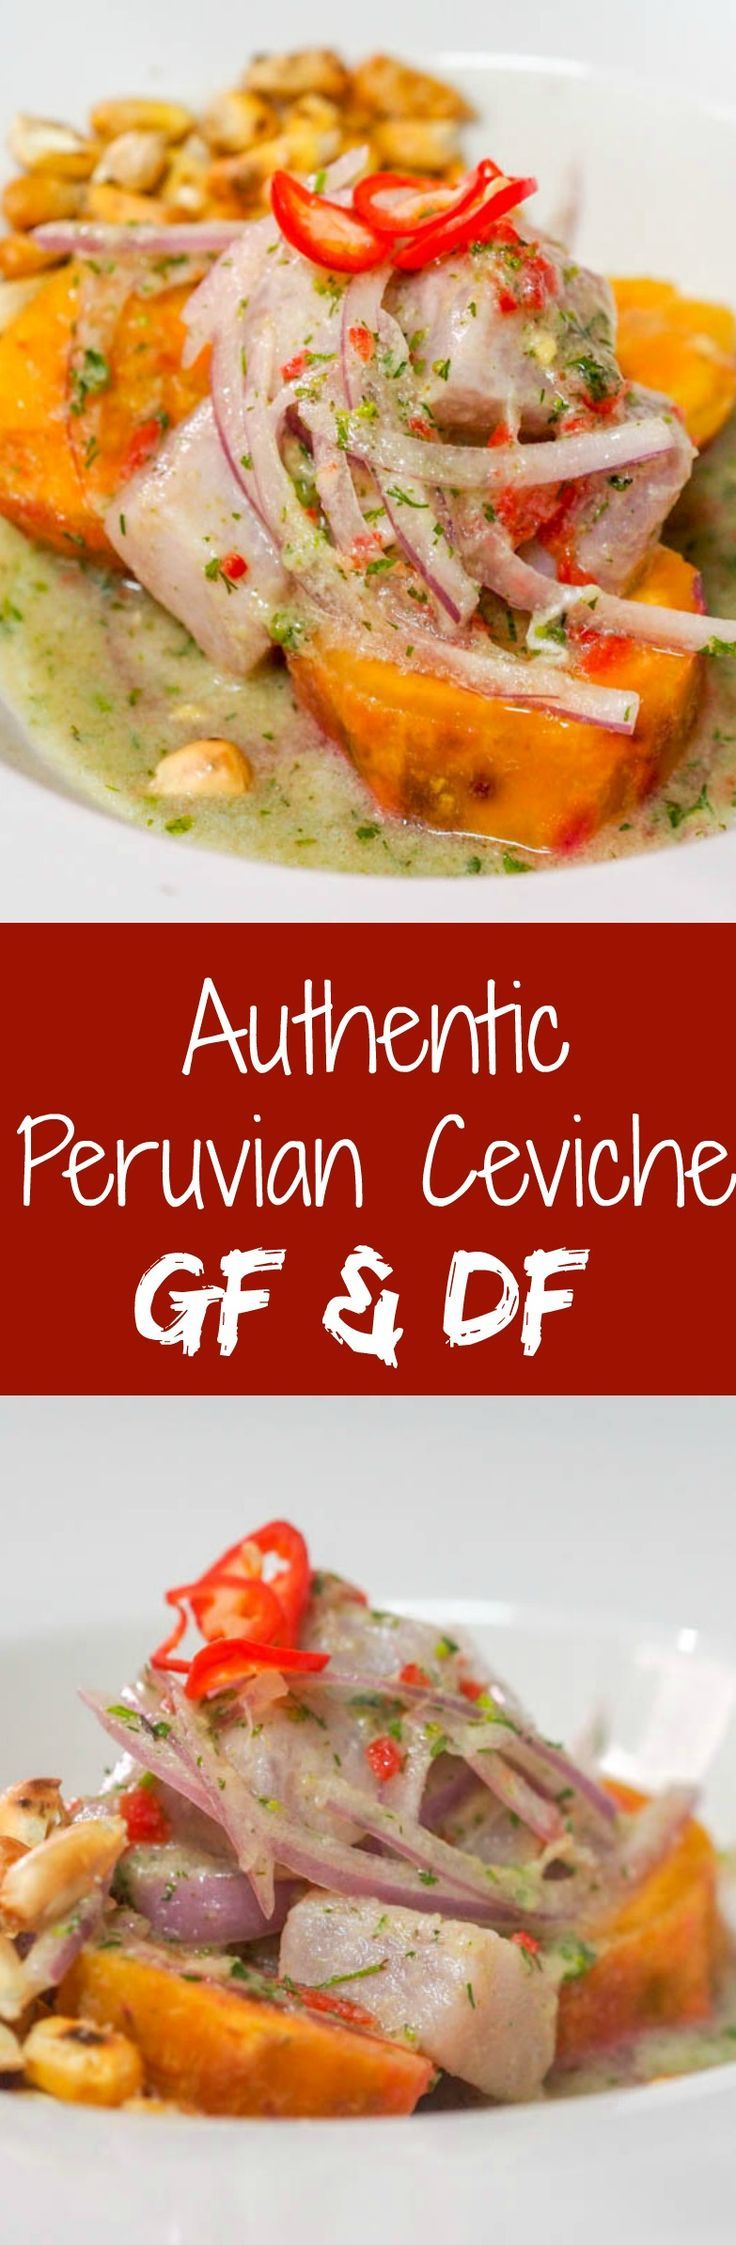 Learn how to make authentic Peruvian ceviche. It's simple but has some tricks and insider tips -- including an explanation of leche de tigre - also known as tigers milk (nothing to do with tigers, trust me). Gluten Free + Dairy Free. Perfect no cook summer recipe ready in MINUTES! Doesn't get better than fresh fish marinated in lime juice! | http://avocadopesto.com